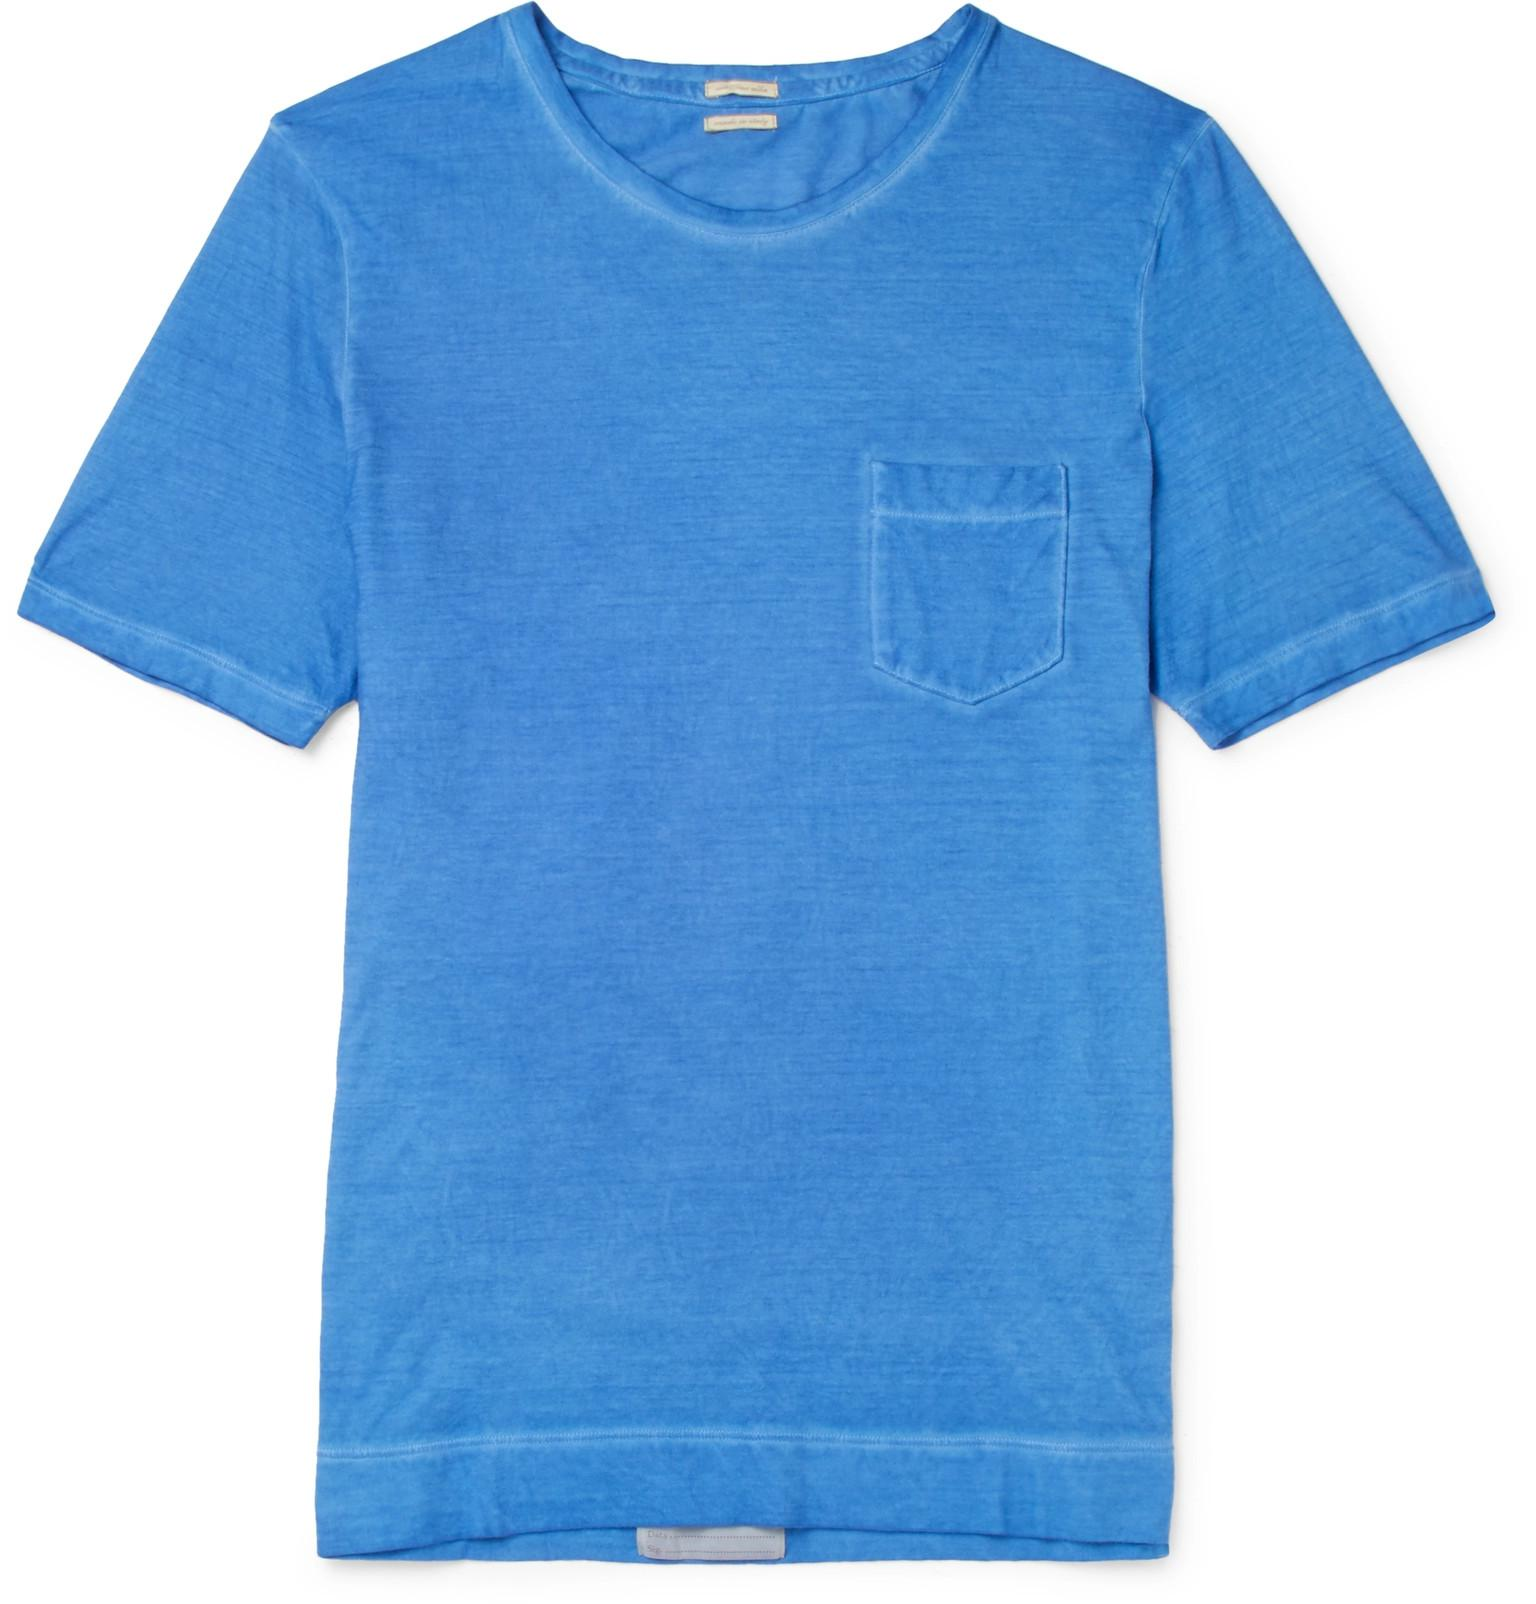 MASSIMO ALBA Panarea Garment-dyed Cotton-jersey T-shirt - Blue